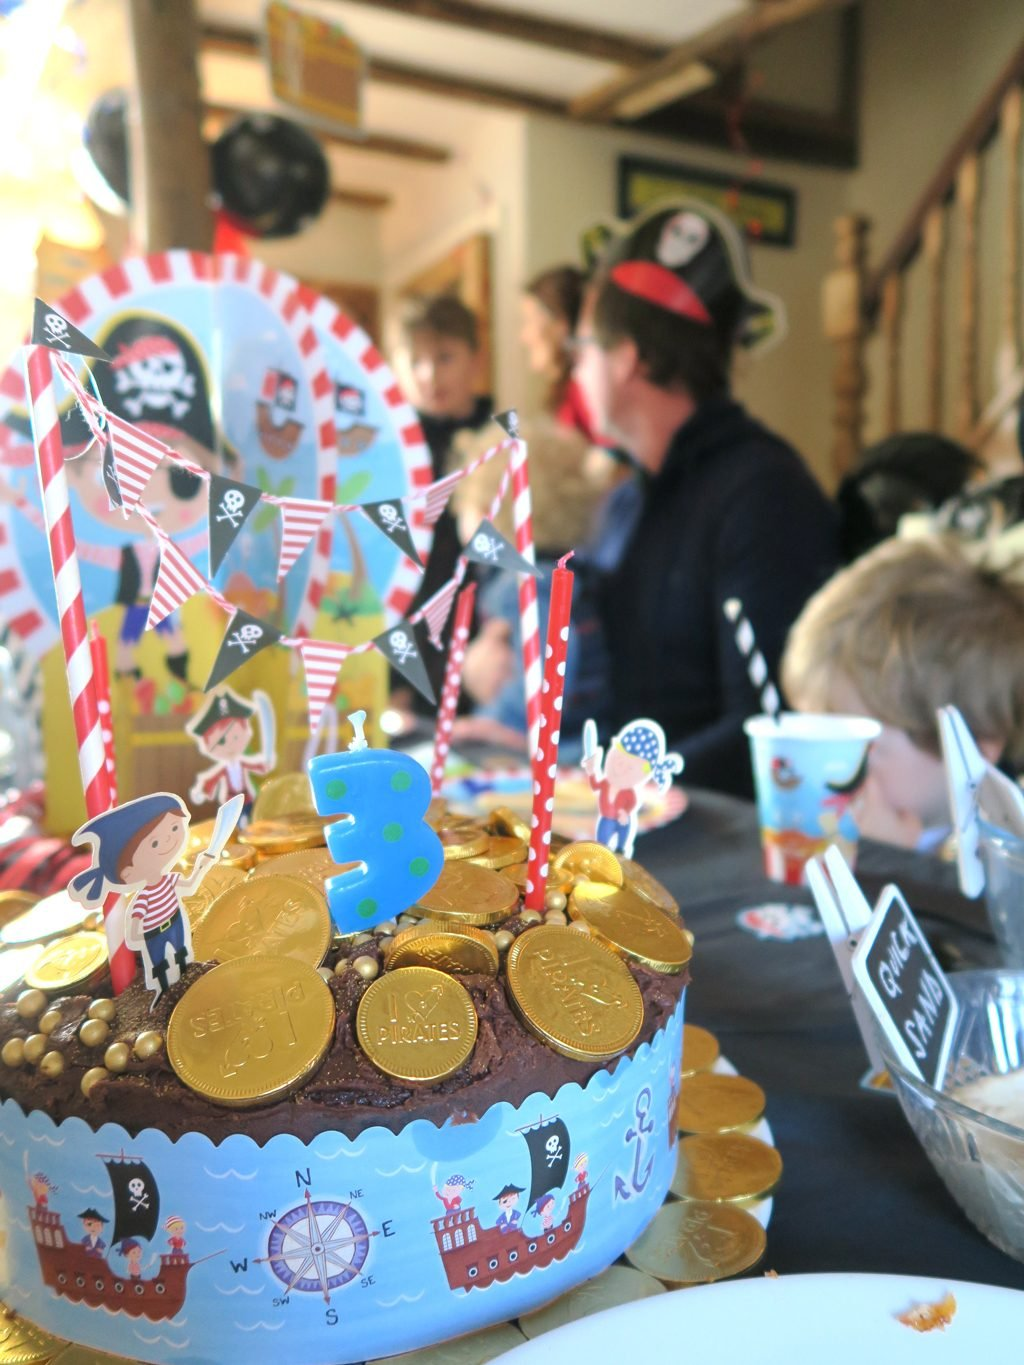 A pirate birthday party